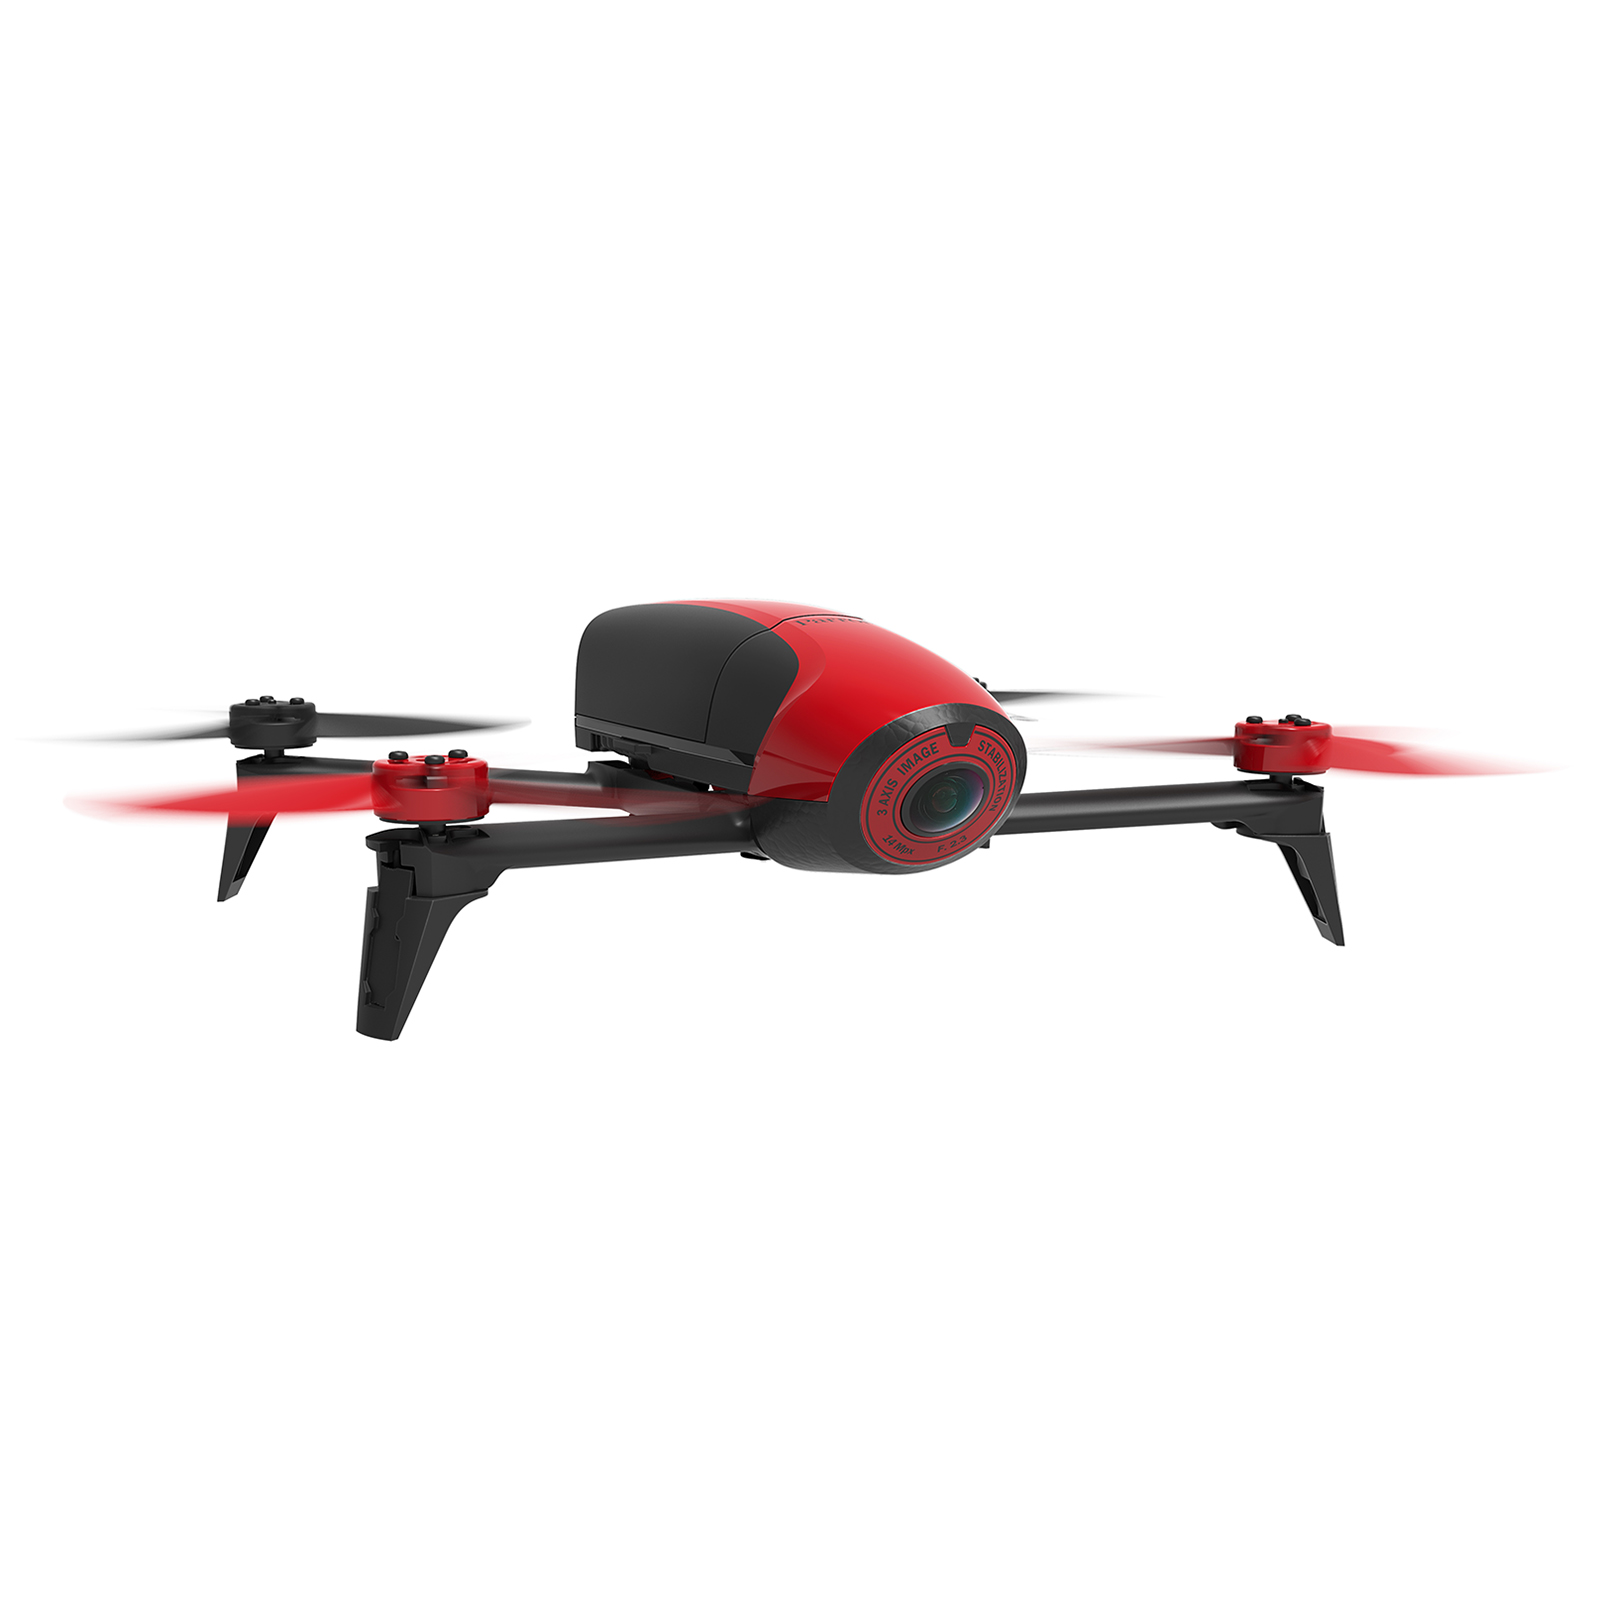 Parrot Bebop 2 Quadcopter Drone (Red) (Certified Refurbished) by Parrot